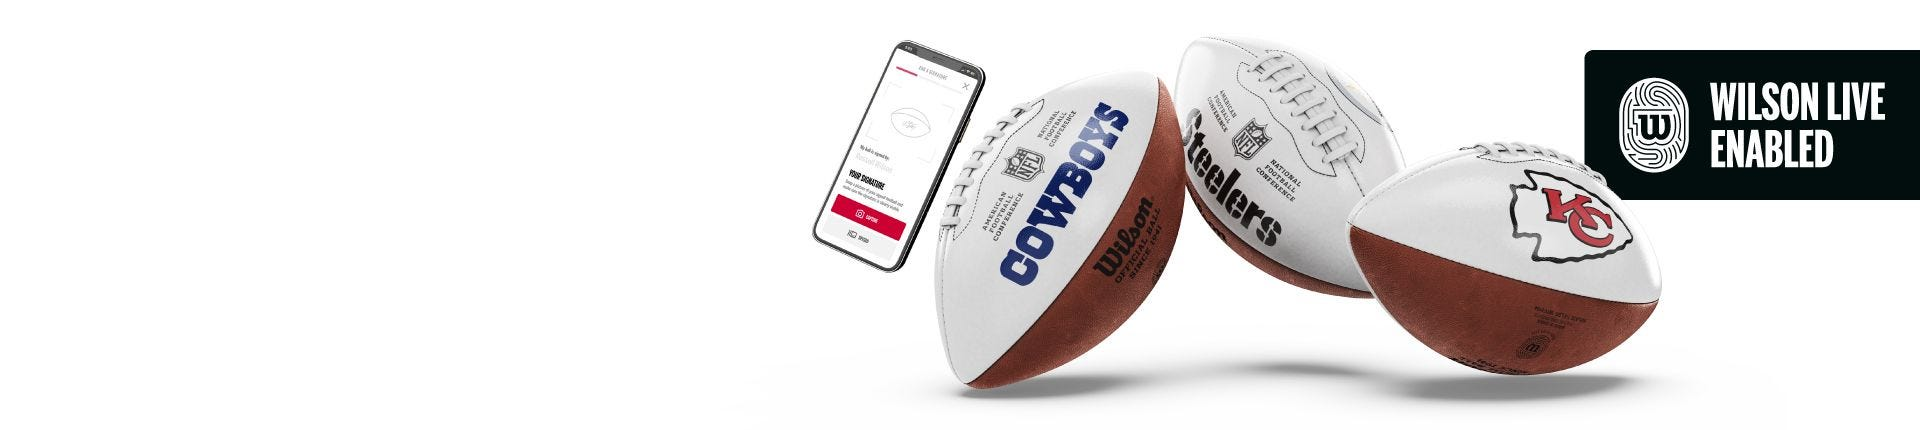 Assortment of Wilson Live enabled football products